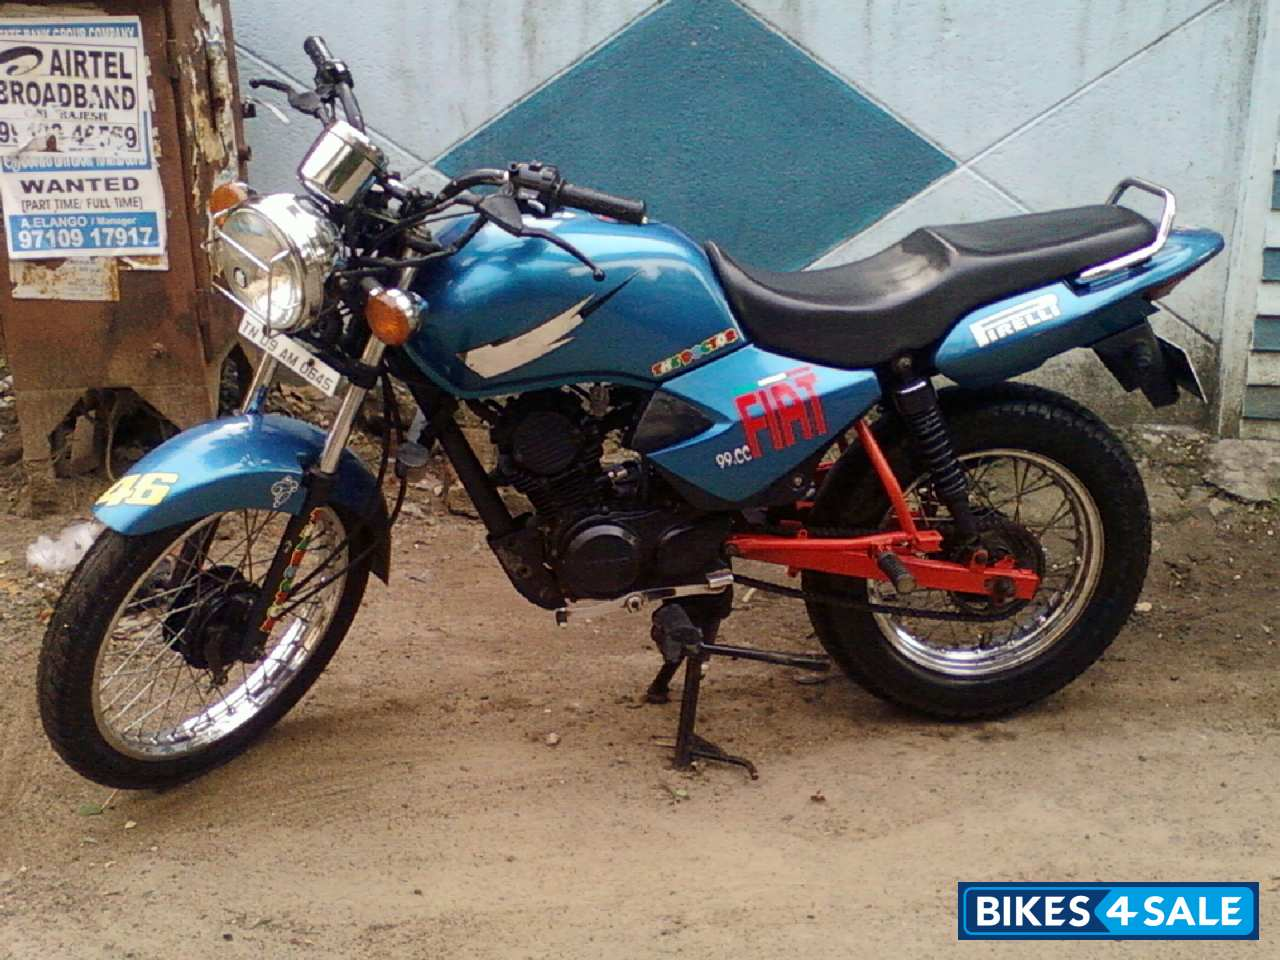 Second Hand Tvs Star City In Chennai Good Mileage And